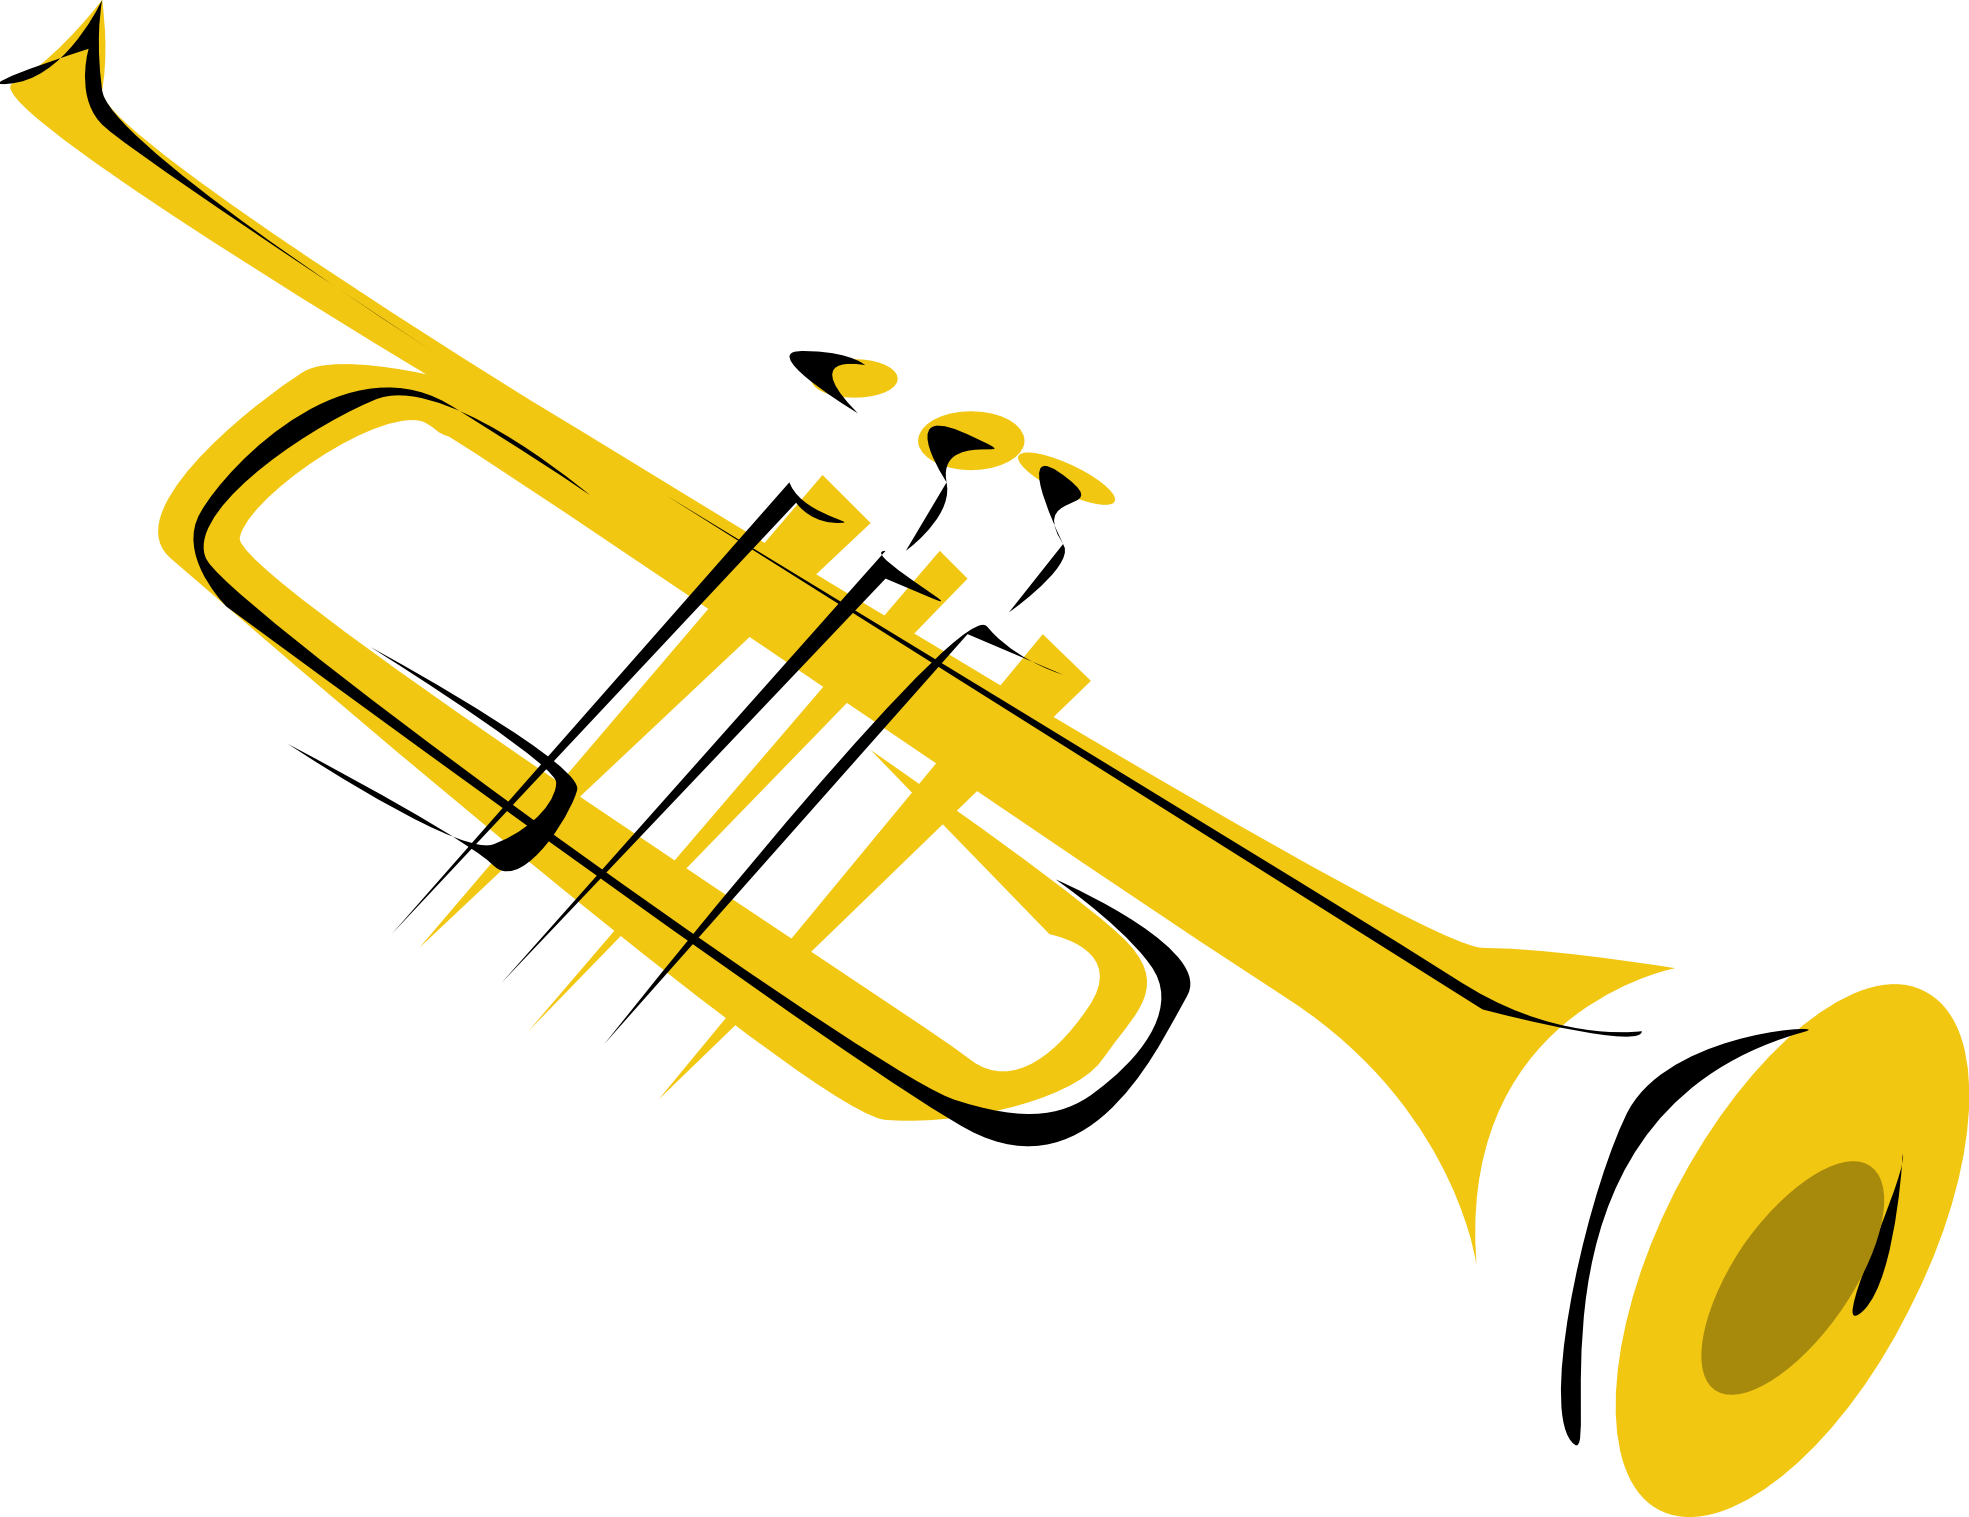 1930s music clipart clipart images gallery for free download.